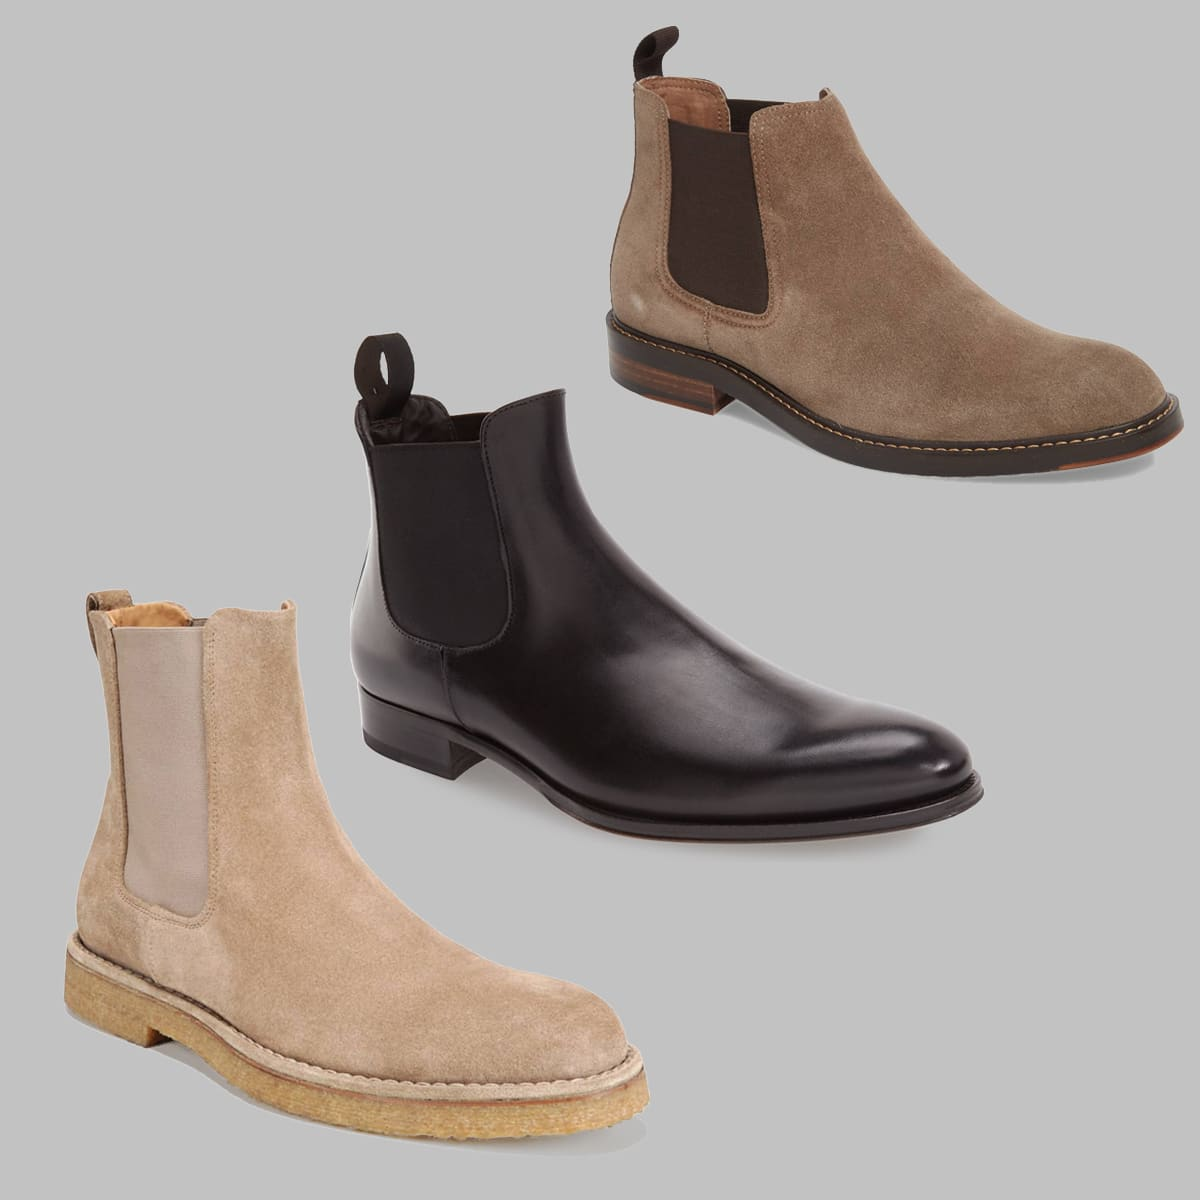 Chelsea boots for fall